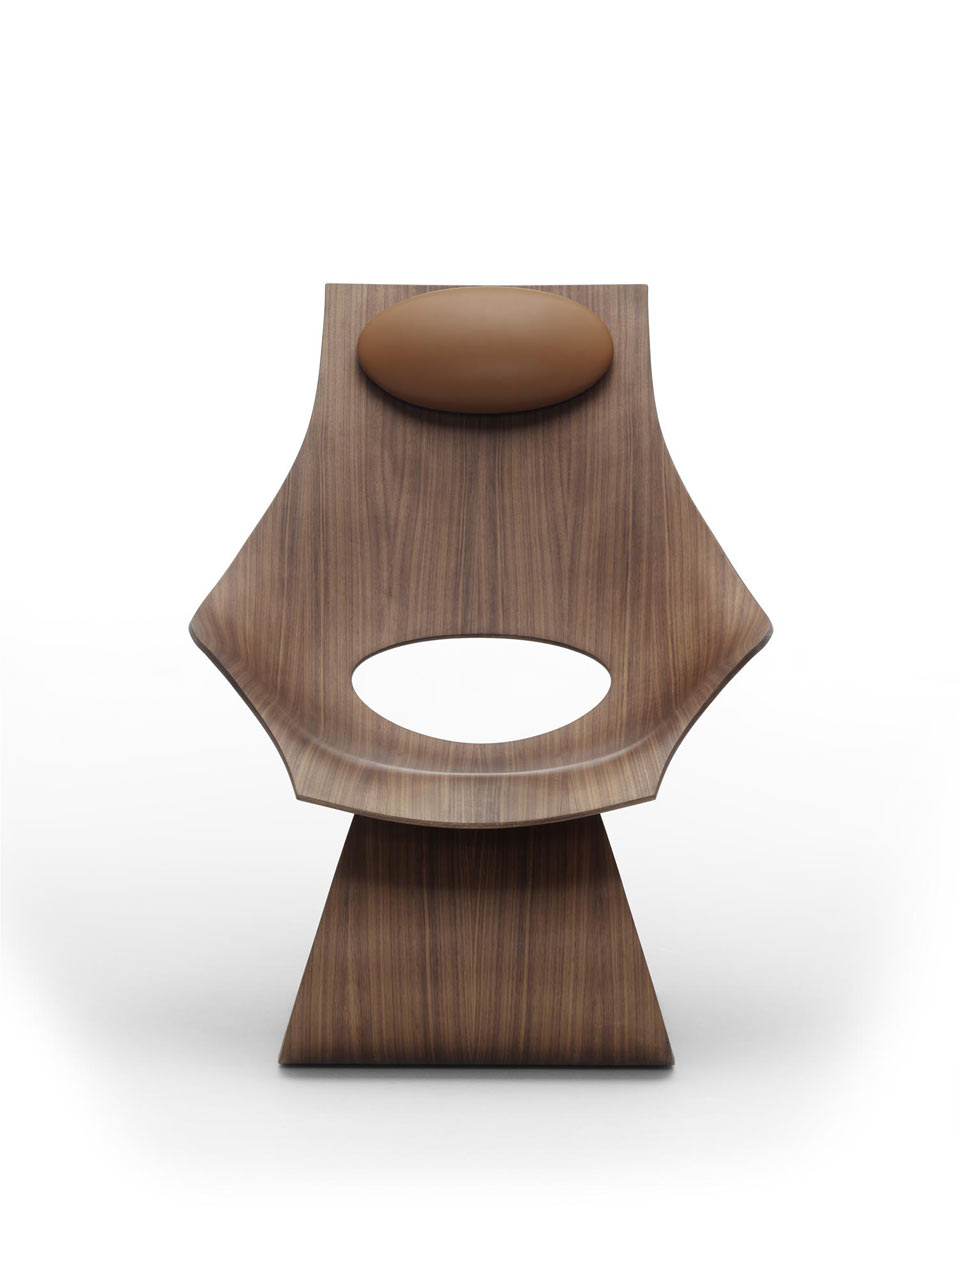 Dream-Chair-Tadao-Ando-Carl-Hansen-4-walnut